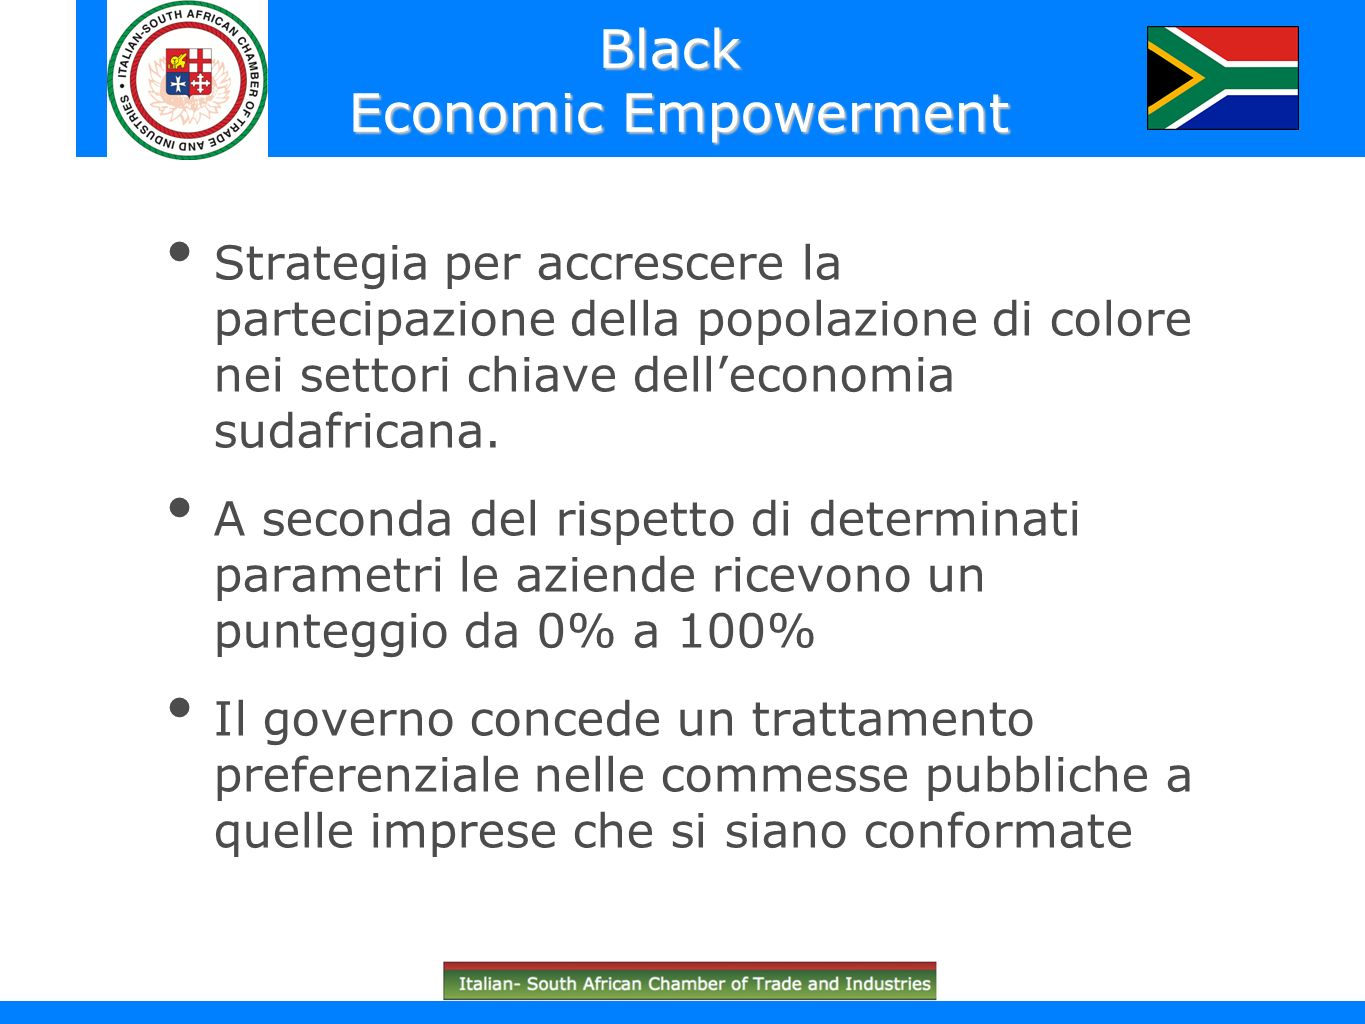 Black Economic Empowerment